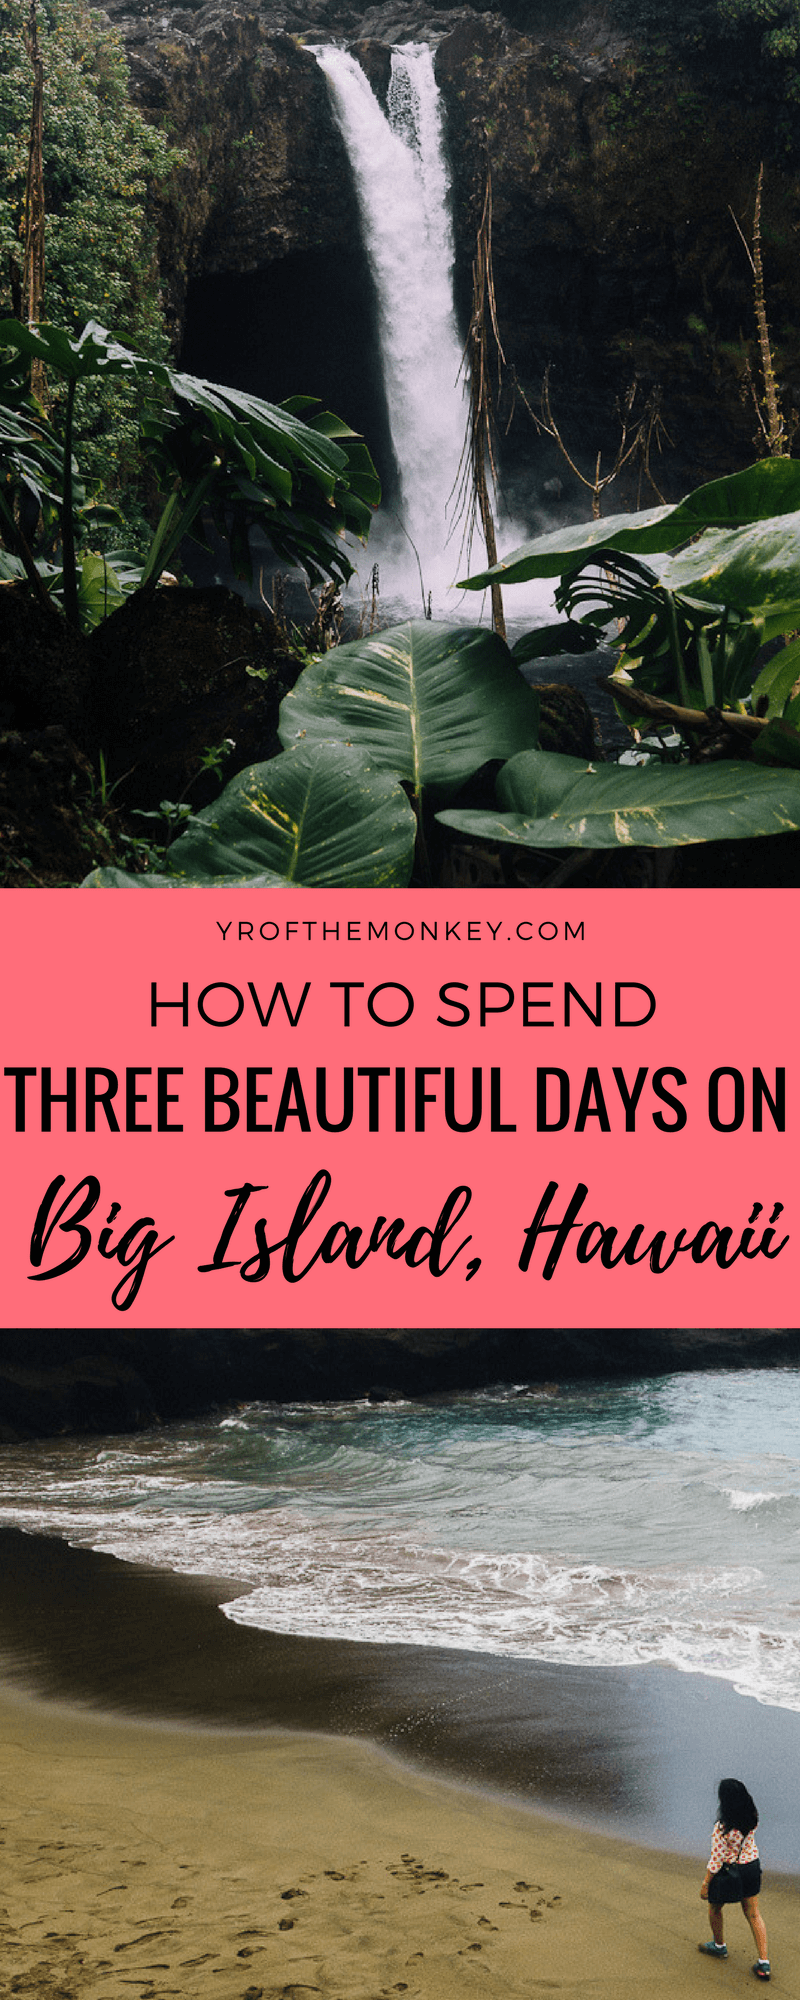 The ultimate travel guide to Big Island, Hawaii, USA listing the top attractions and yummy local food that you must try in Hilo and Kona. Includes secret beaches, lava sighting and a coffee tour. #hawaii #bigisland #usa #americas #volcano